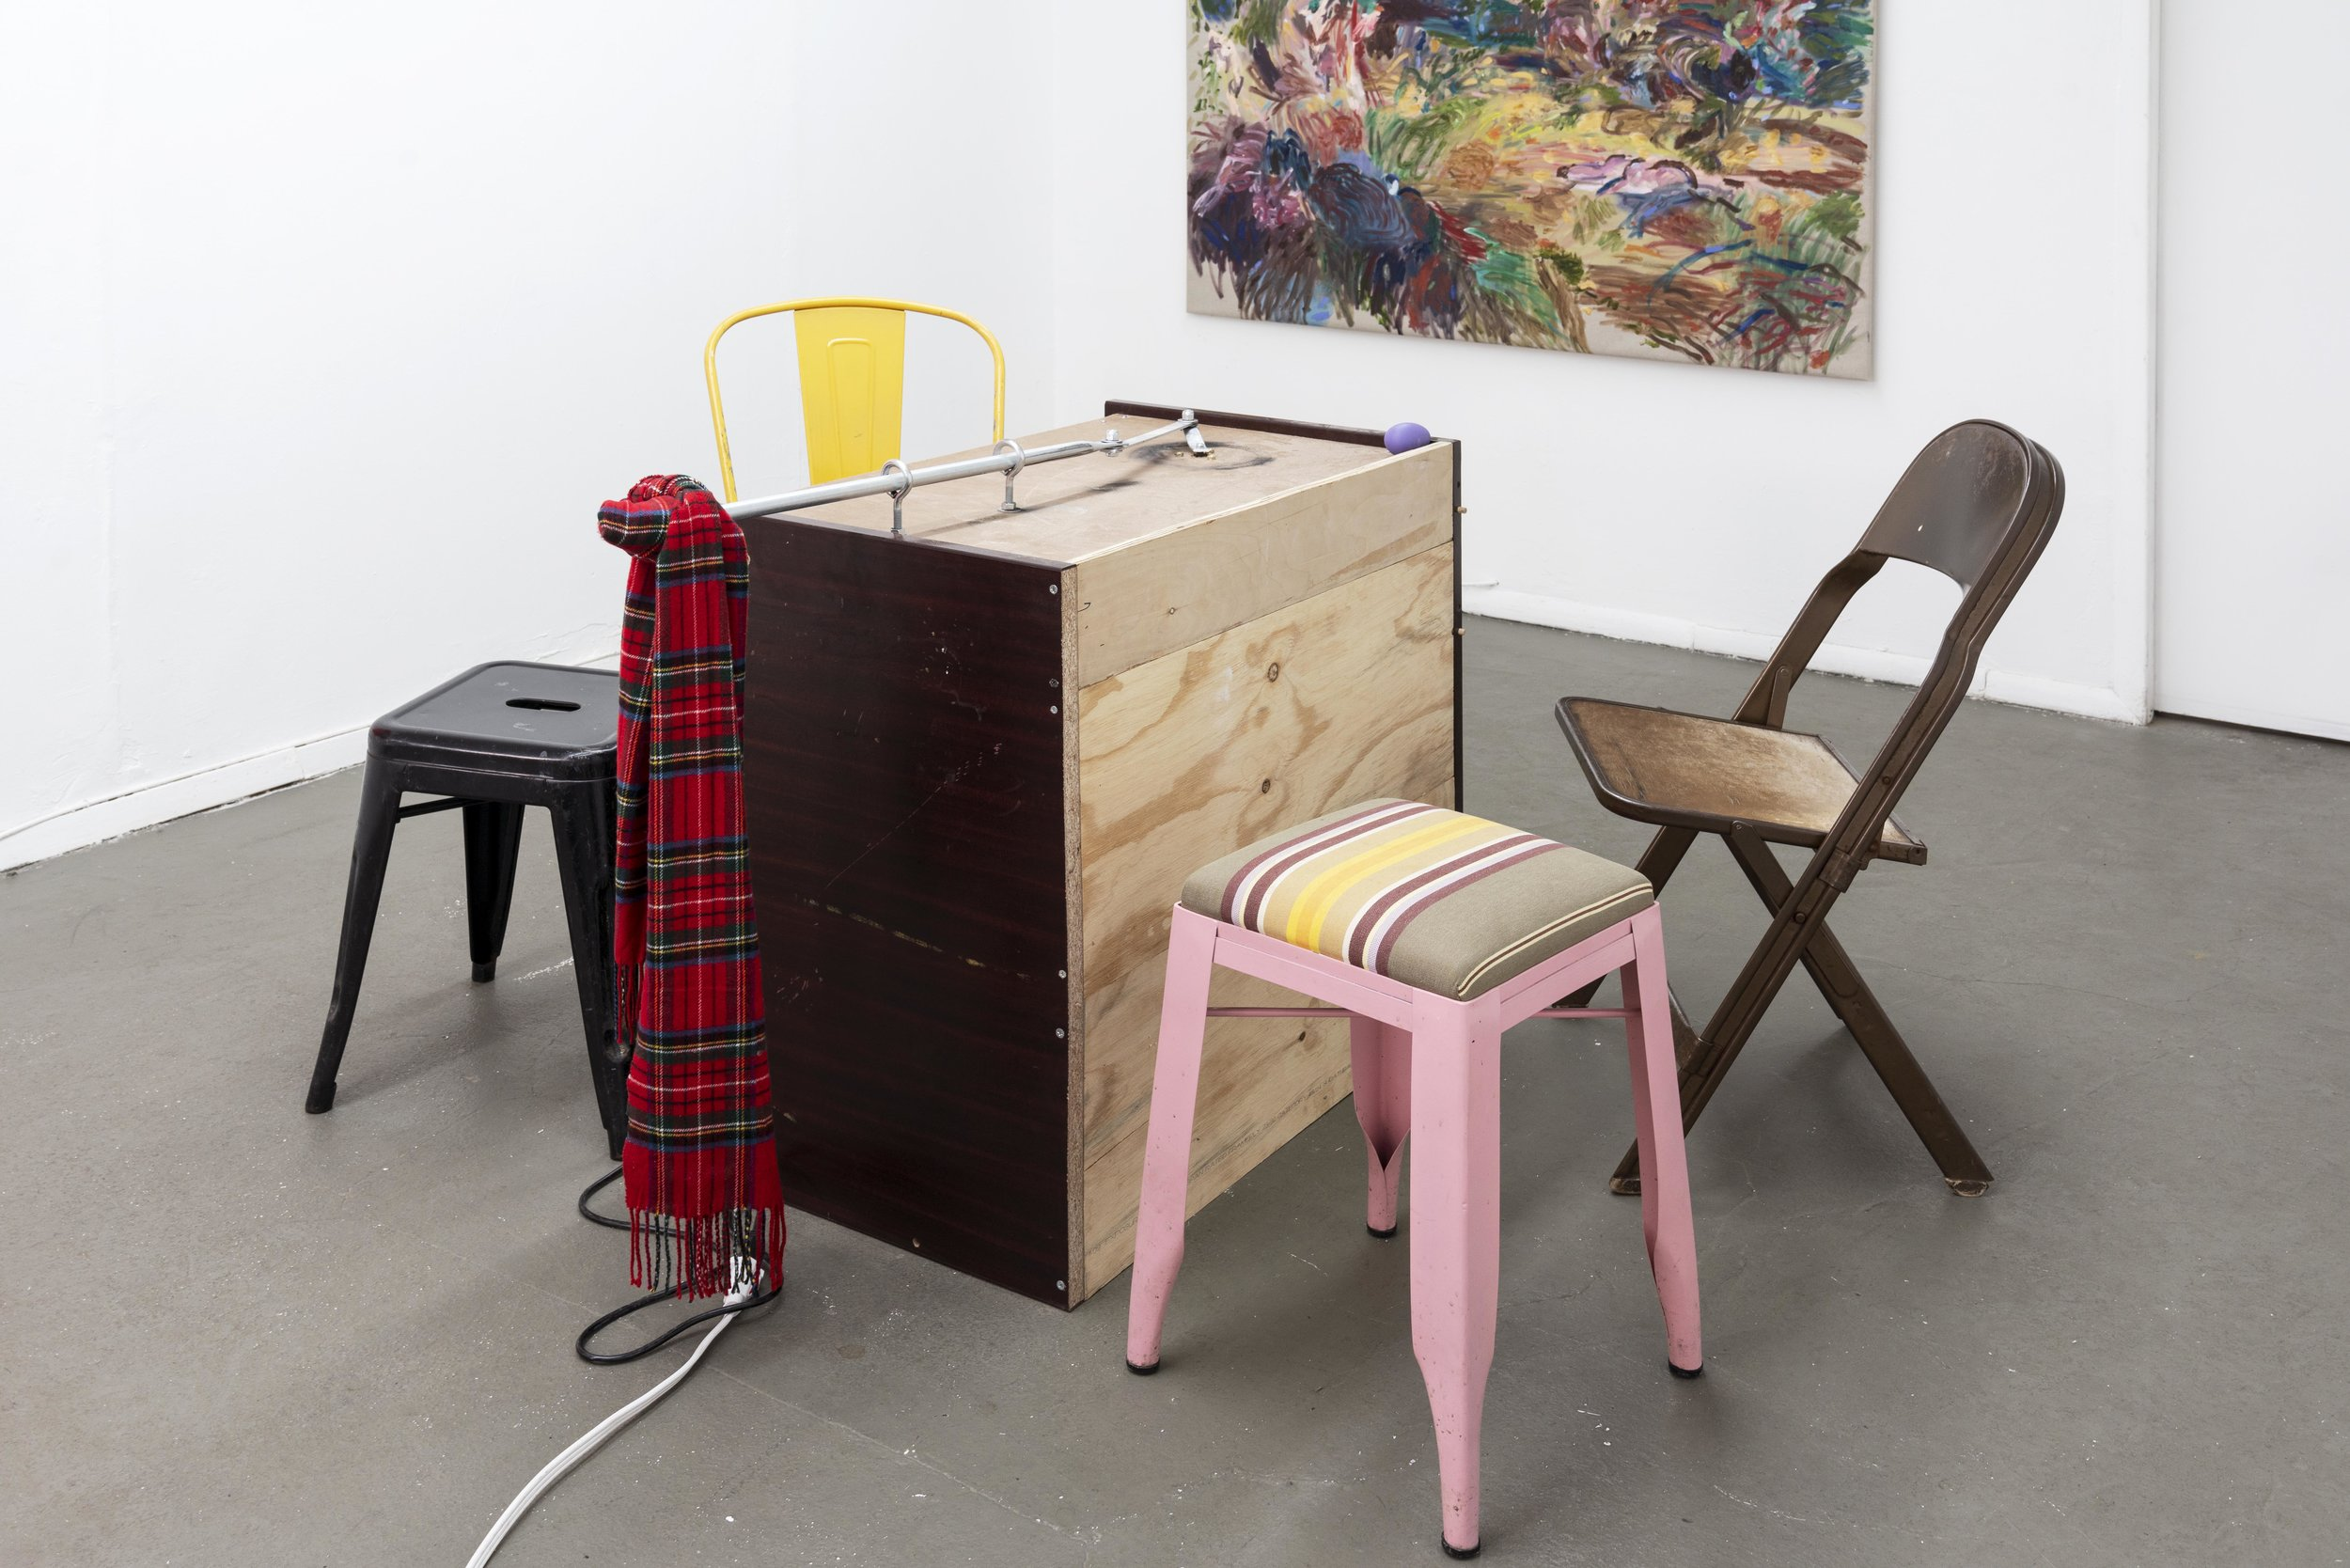 George Egerton-Warburton,  Penal Café: Symptom as Occupation/Business models/Self-surveillance , 2019, wiper motor, tartan scarf, steel, aluminum, cords, café chairs clandestinely appropriated from/in the style of Australian cafés such as Carthage Must be Destroyed, Dudley's, Five Leaves, and also the Butcher's Daughter which is not Australian but adjacent to Charley's and Ruby's.